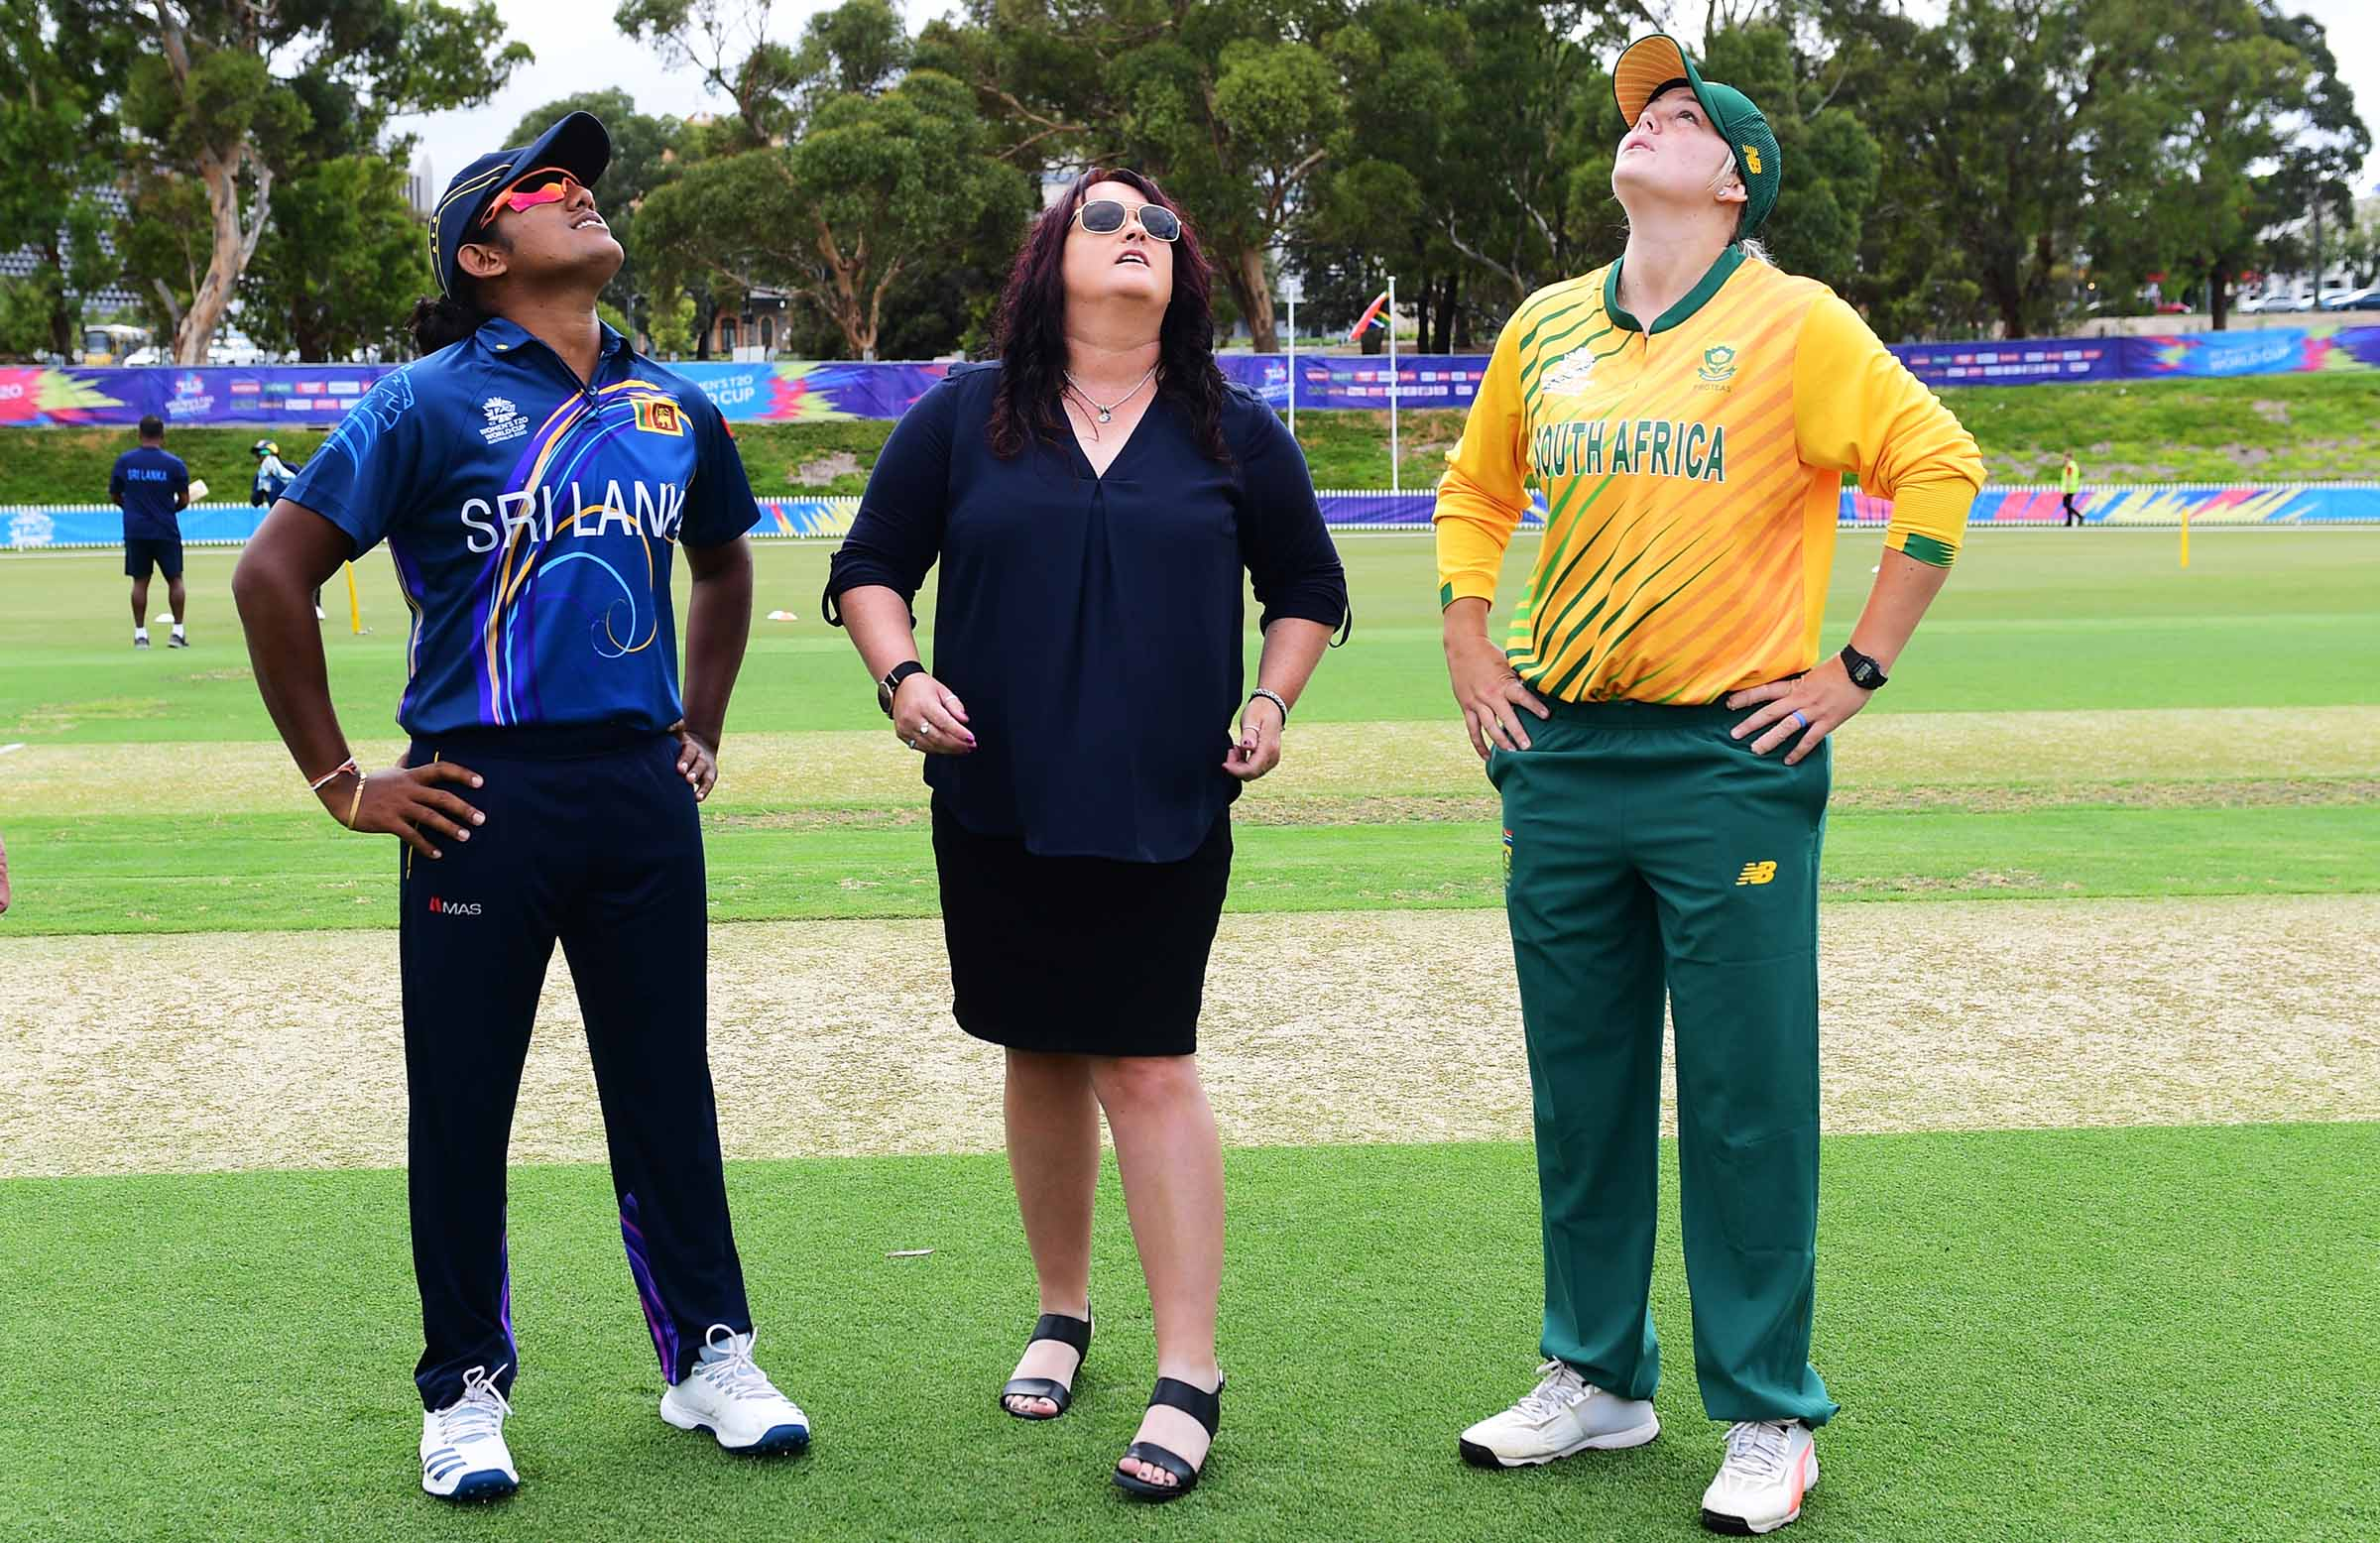 Rolton does the honours at today's toss at Karen Rolton Oval // Getty